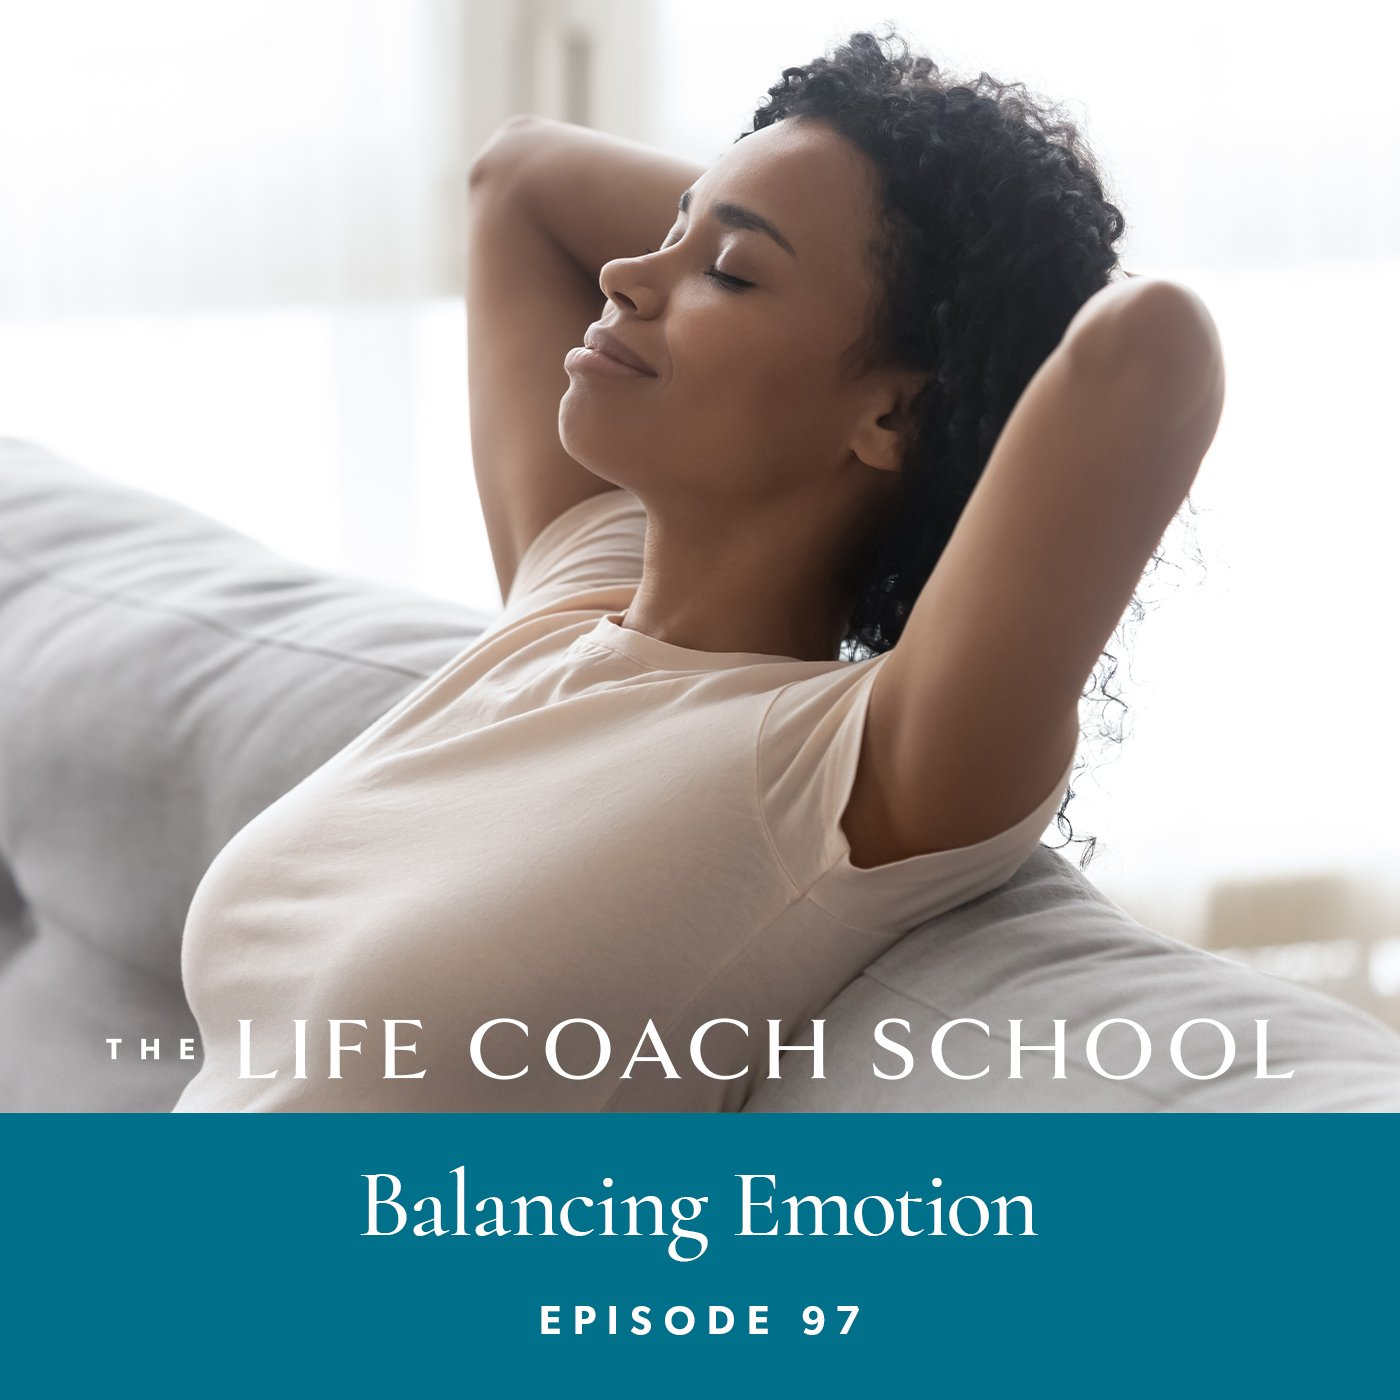 The Life Coach School Podcast with Brooke Castillo | Episode 97 | Balancing Emotion